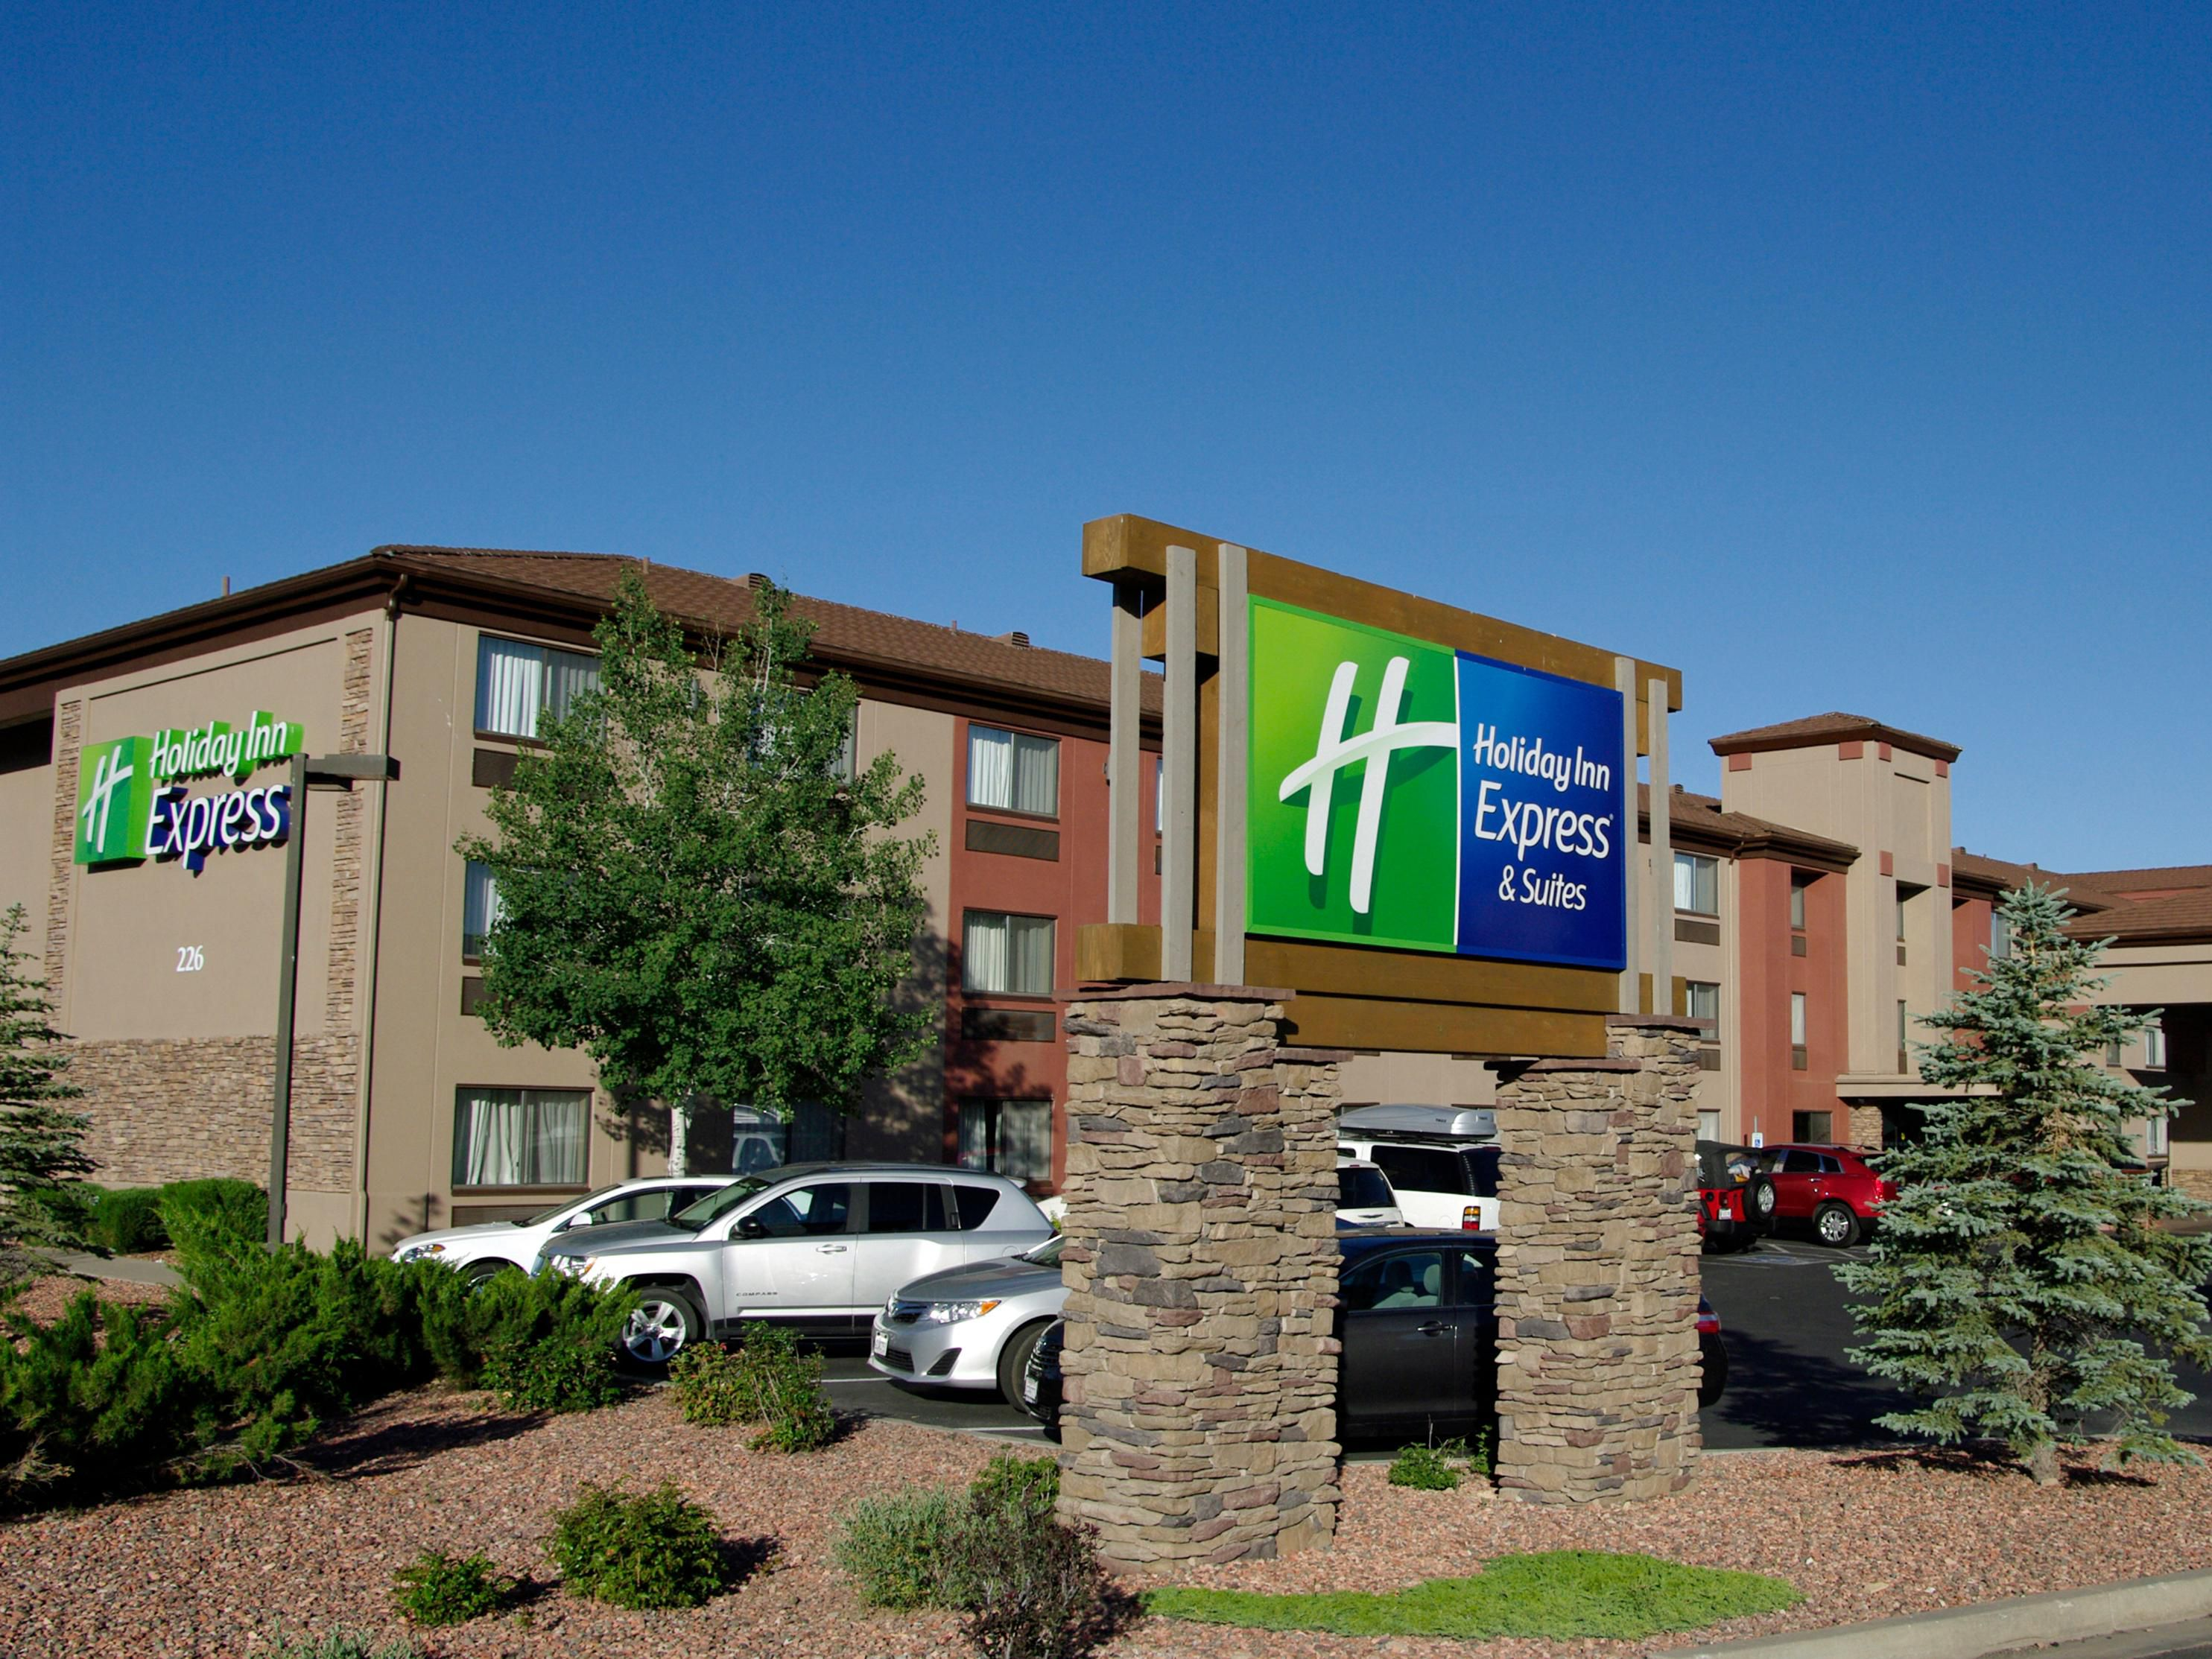 Permalink to Holiday Inn Express Grand Canyon